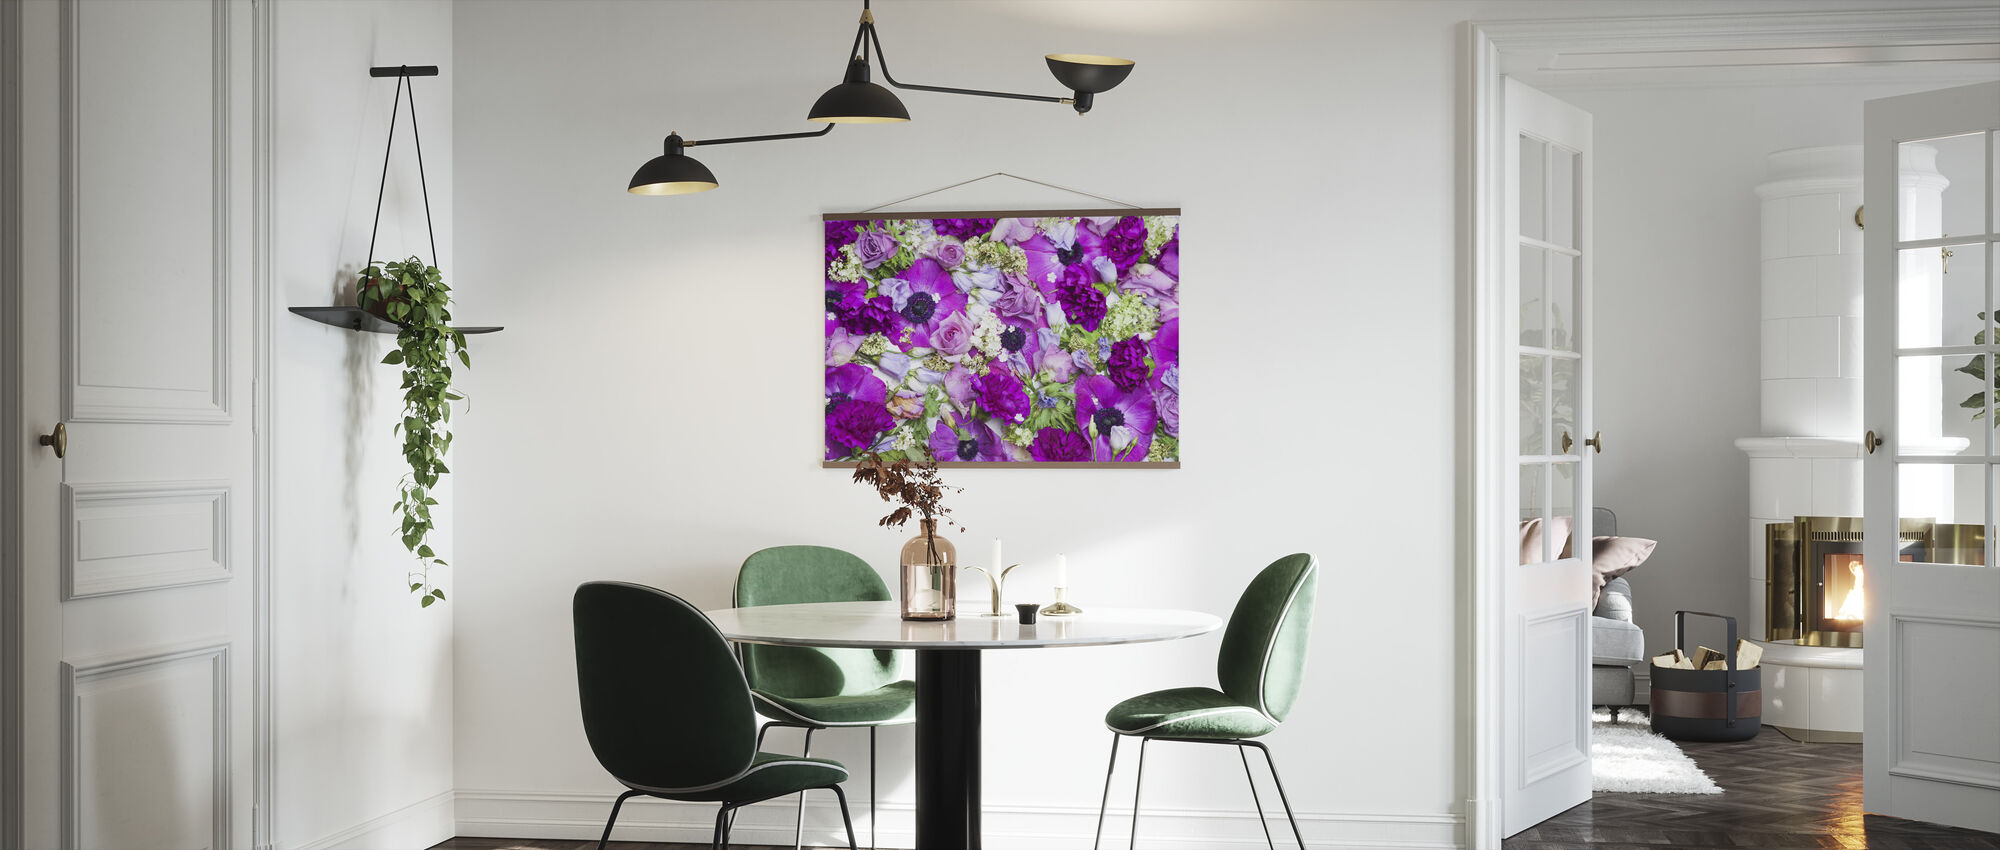 Fresh Flowers - Poster - Kitchen